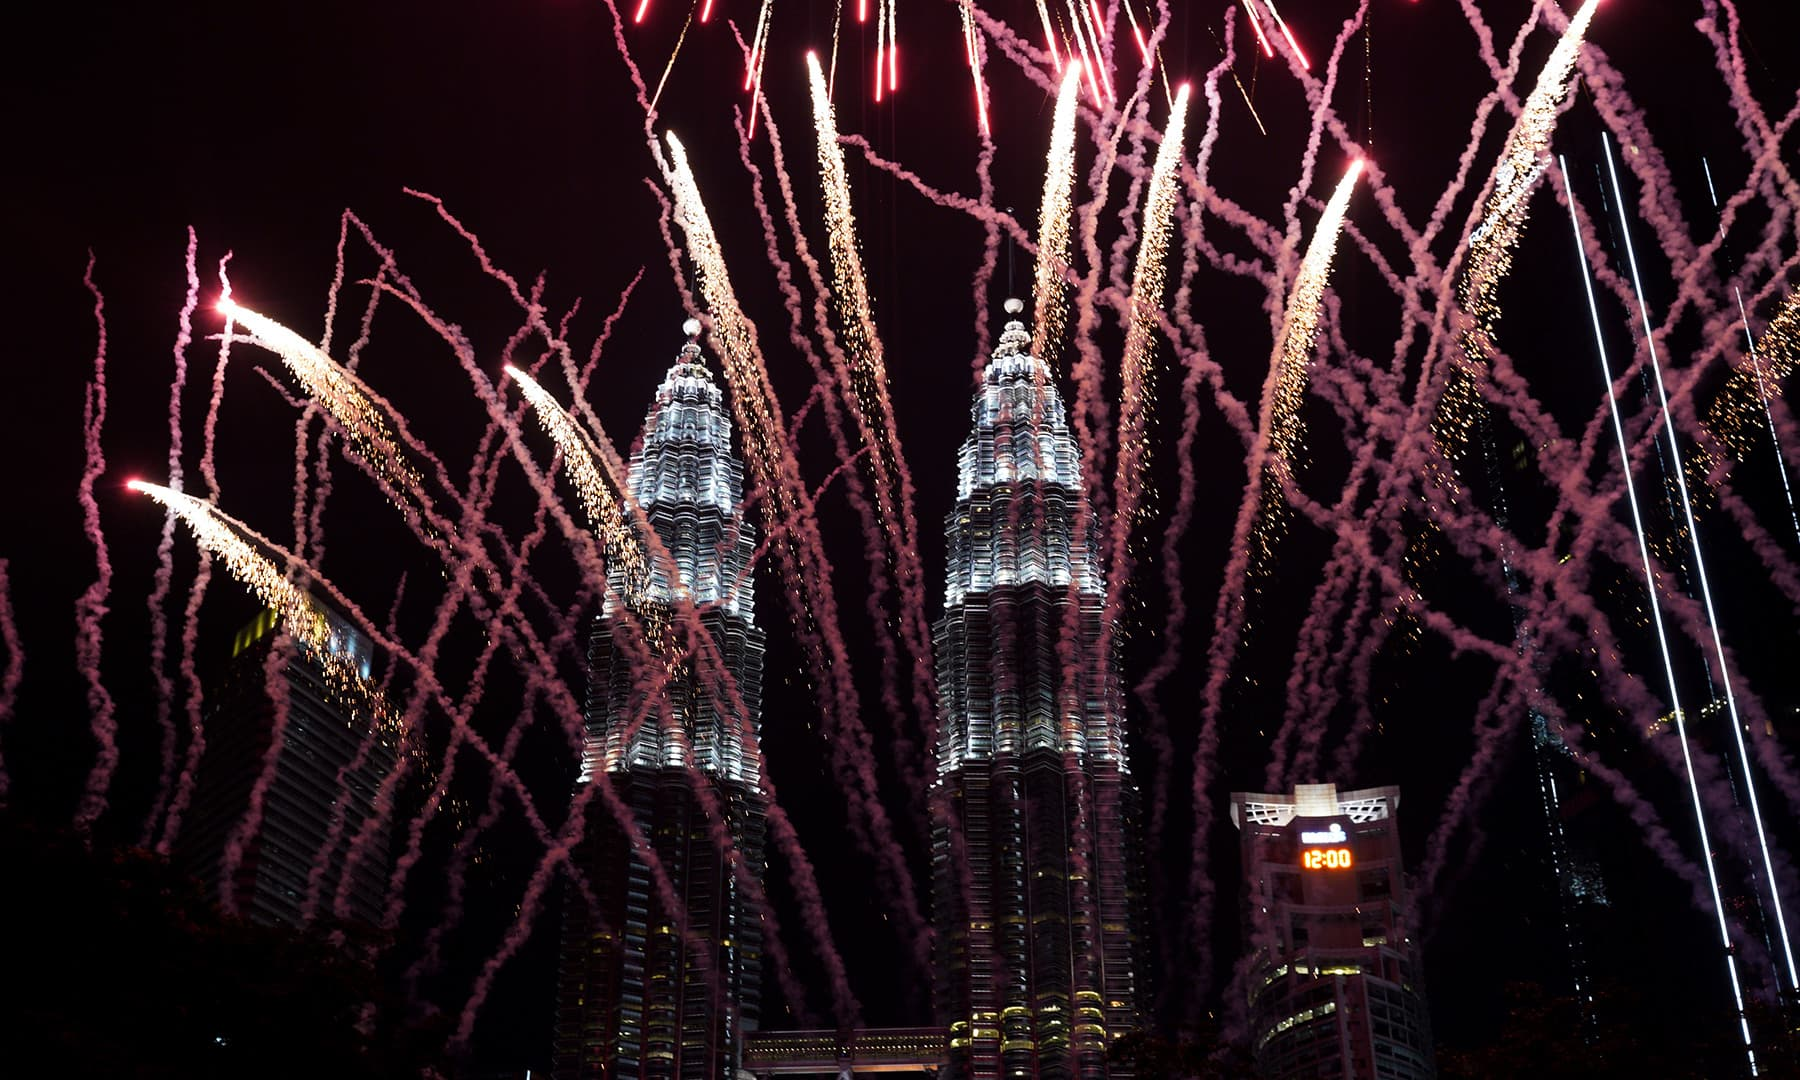 Fireworks explode in front of Malaysia's landmark building, the Petronas Twin Towers, during the New Year's celebration in Kuala Lumpur, Malaysia. — AP